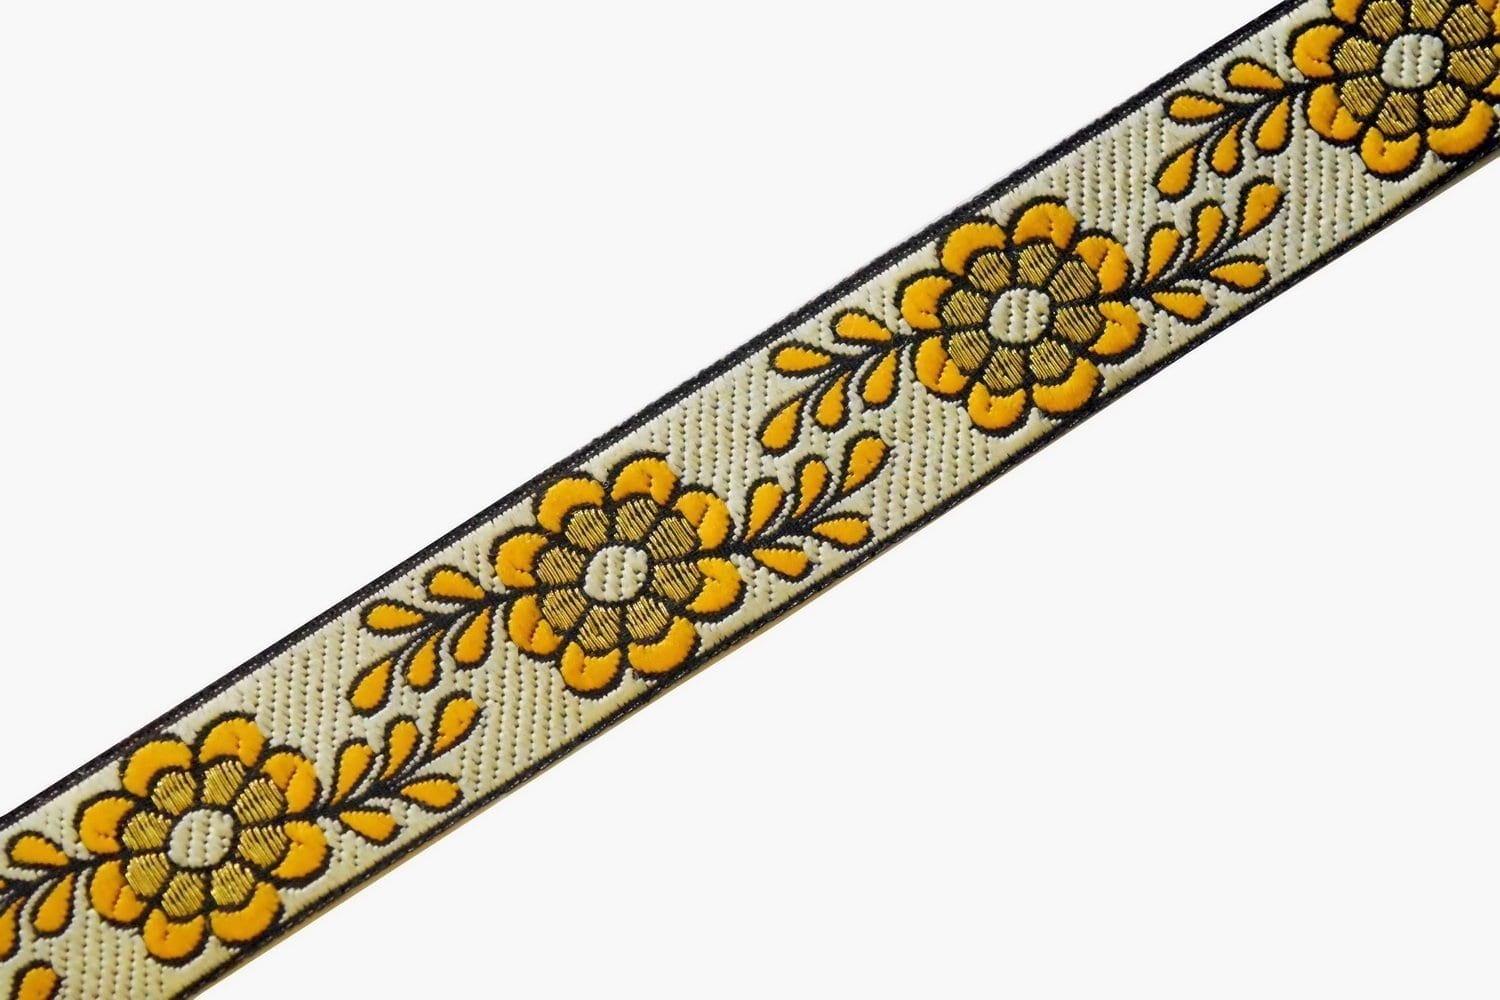 1 inch Wide Embroidered Lace 9 meters Long Piece LC208 1